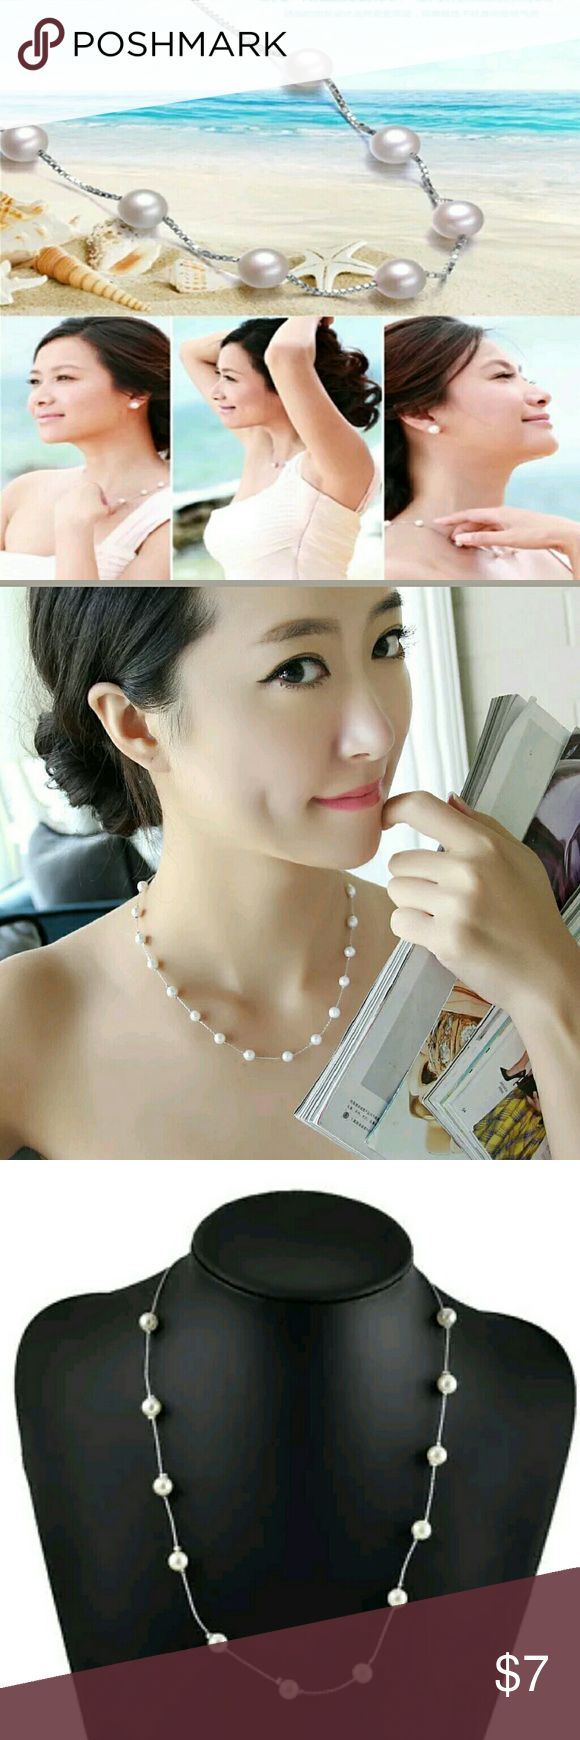 Elegent pearl Stranded choker necklace Condition: 100% Brand New and High Quality ! Material: Alloy + Pearl  Pearl Diam : 8mm   Color:Silver  Package Included: 1 x  Women Pearl Necklace Pendant    High quality in EU and US quality standard converse : 1 inch = 2.54cm or 1cm = 0.393 inch Jewelry Necklaces